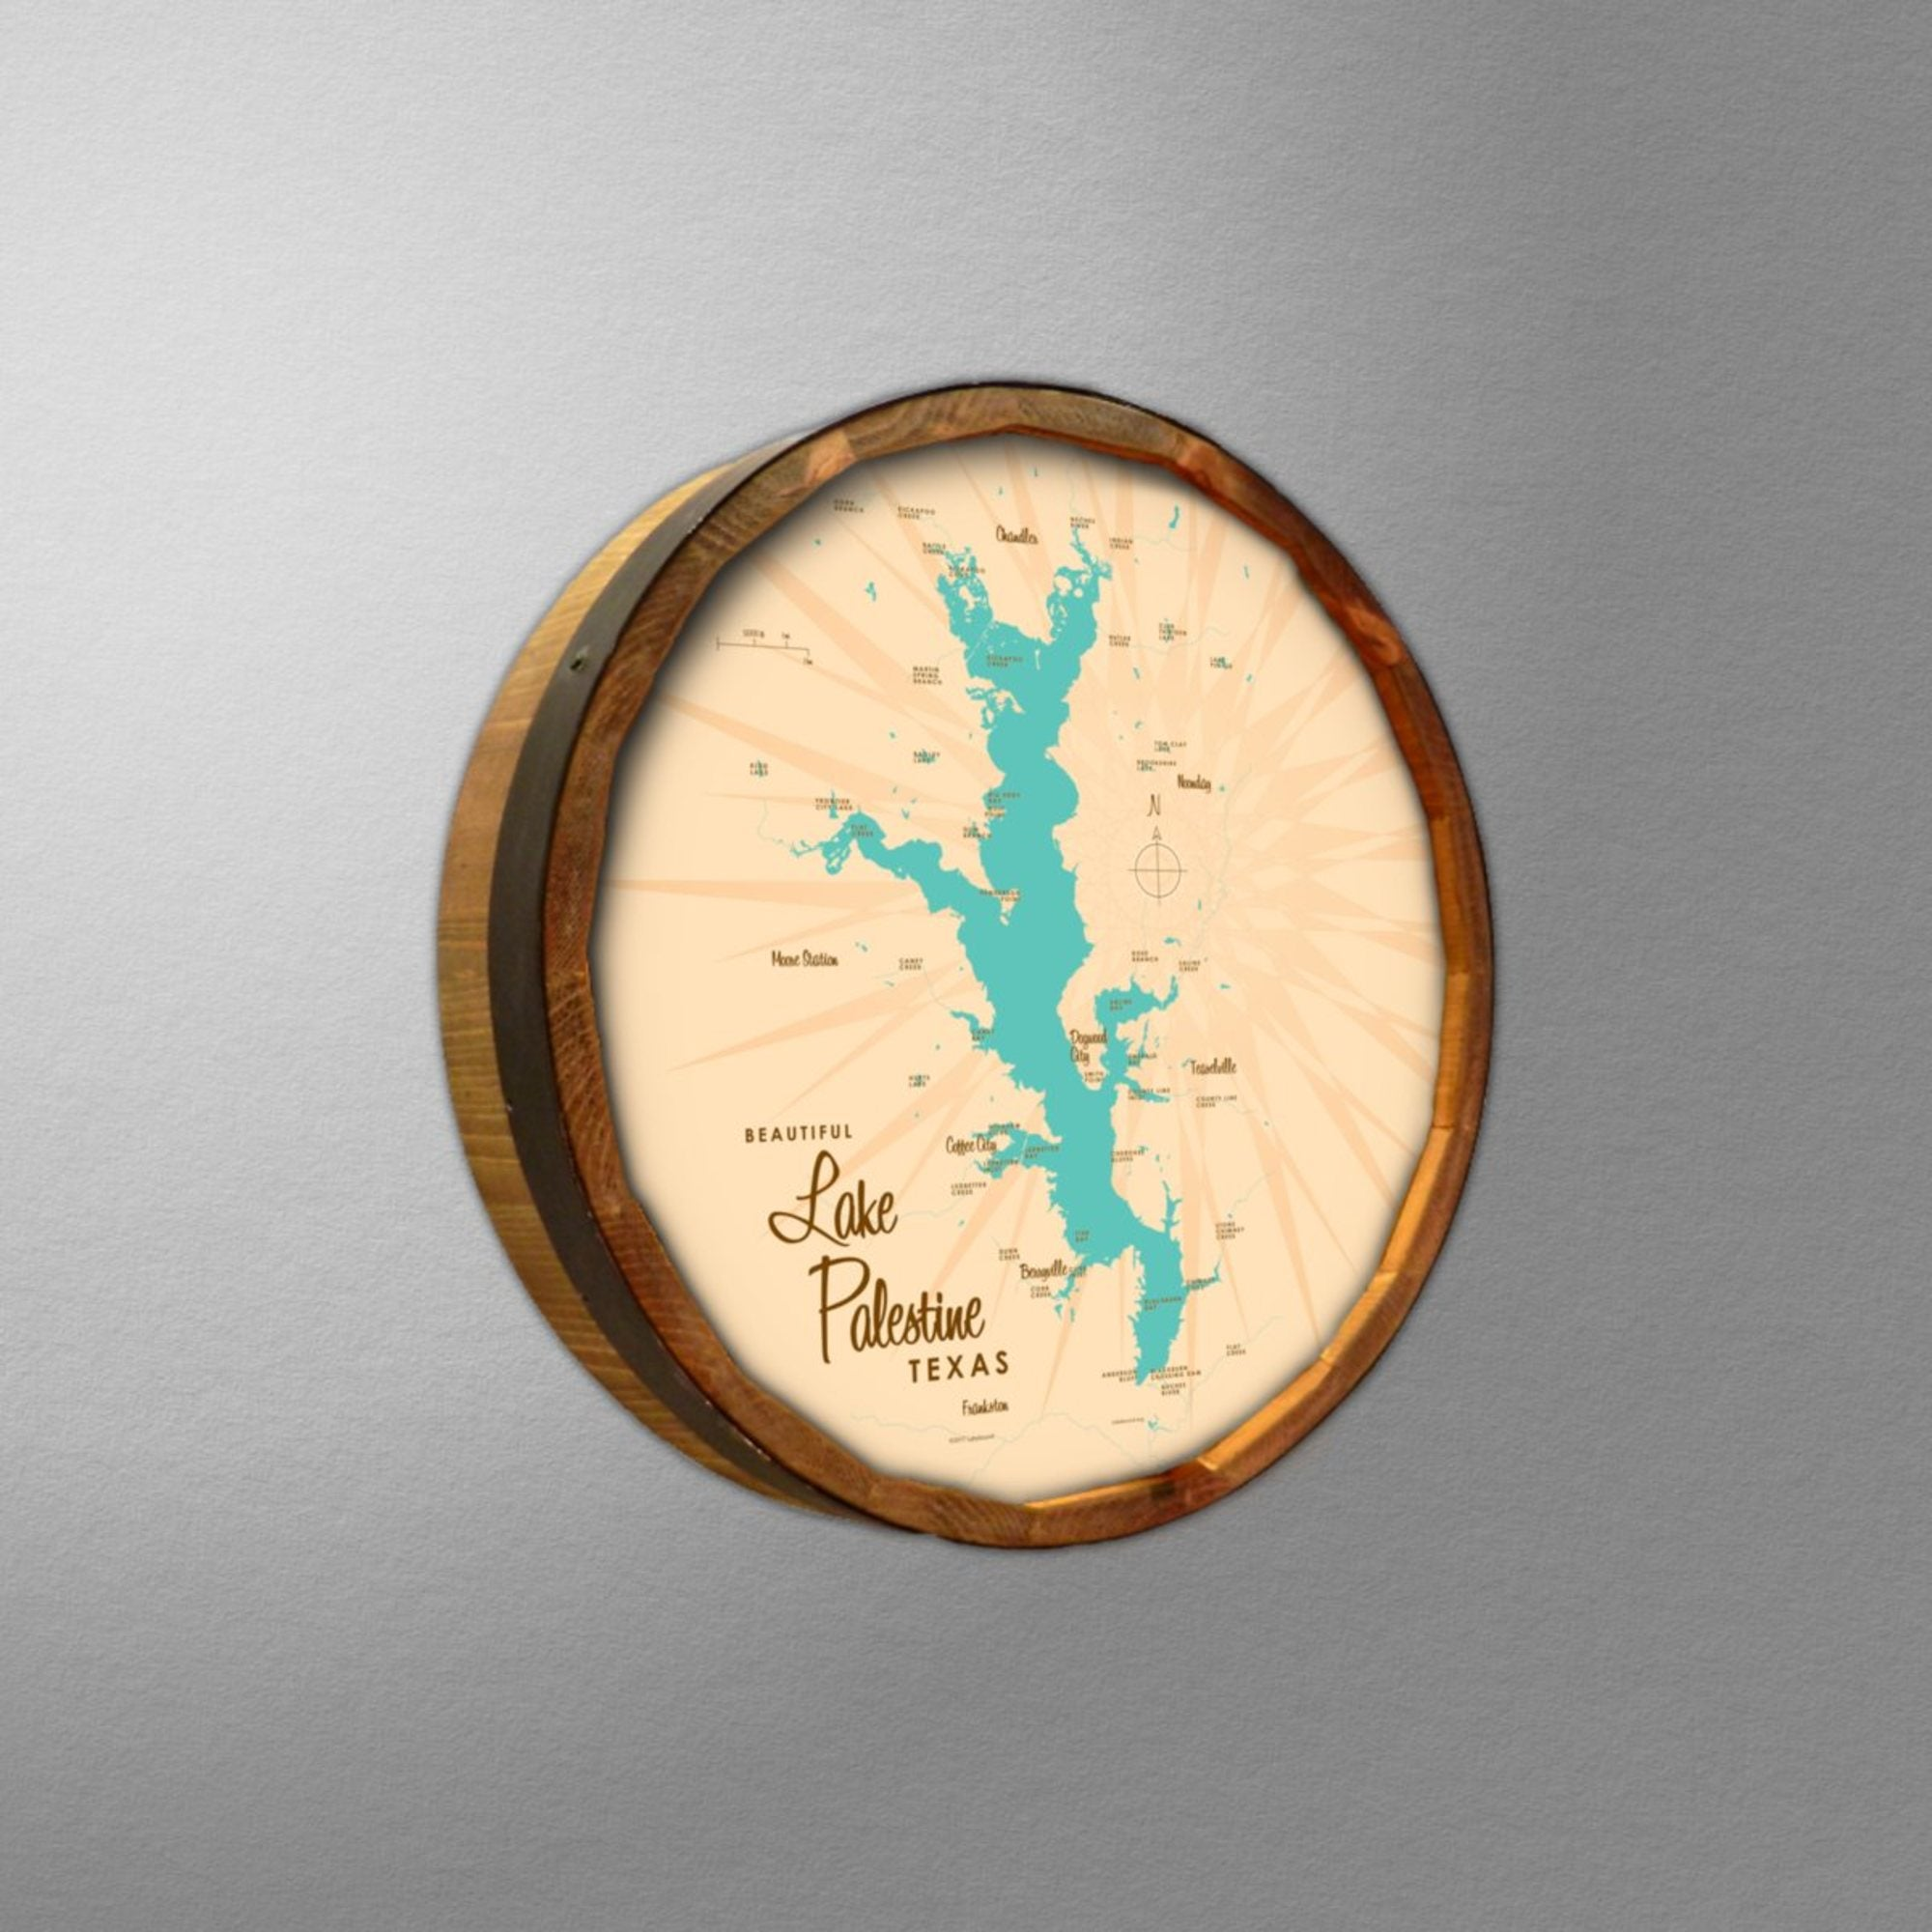 Lake Palestine Texas, Barrel End Map Art